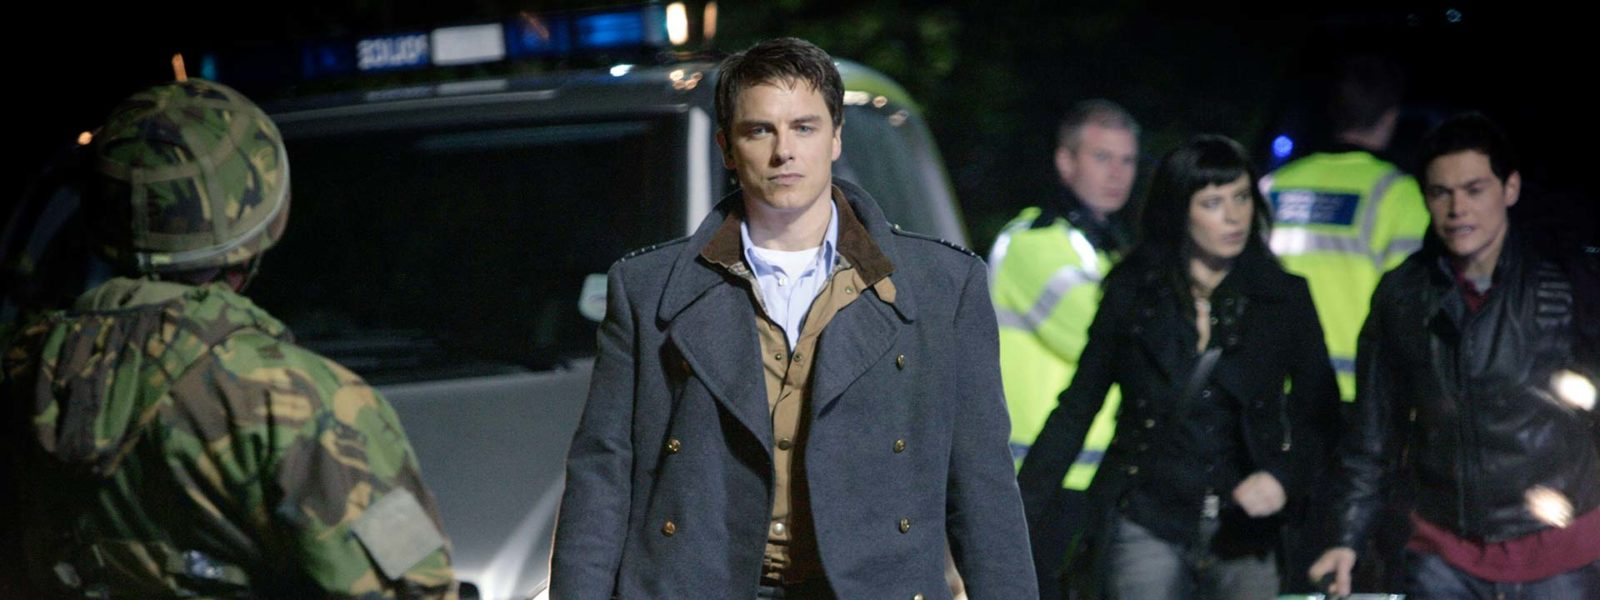 BBCA_Torchwood_102